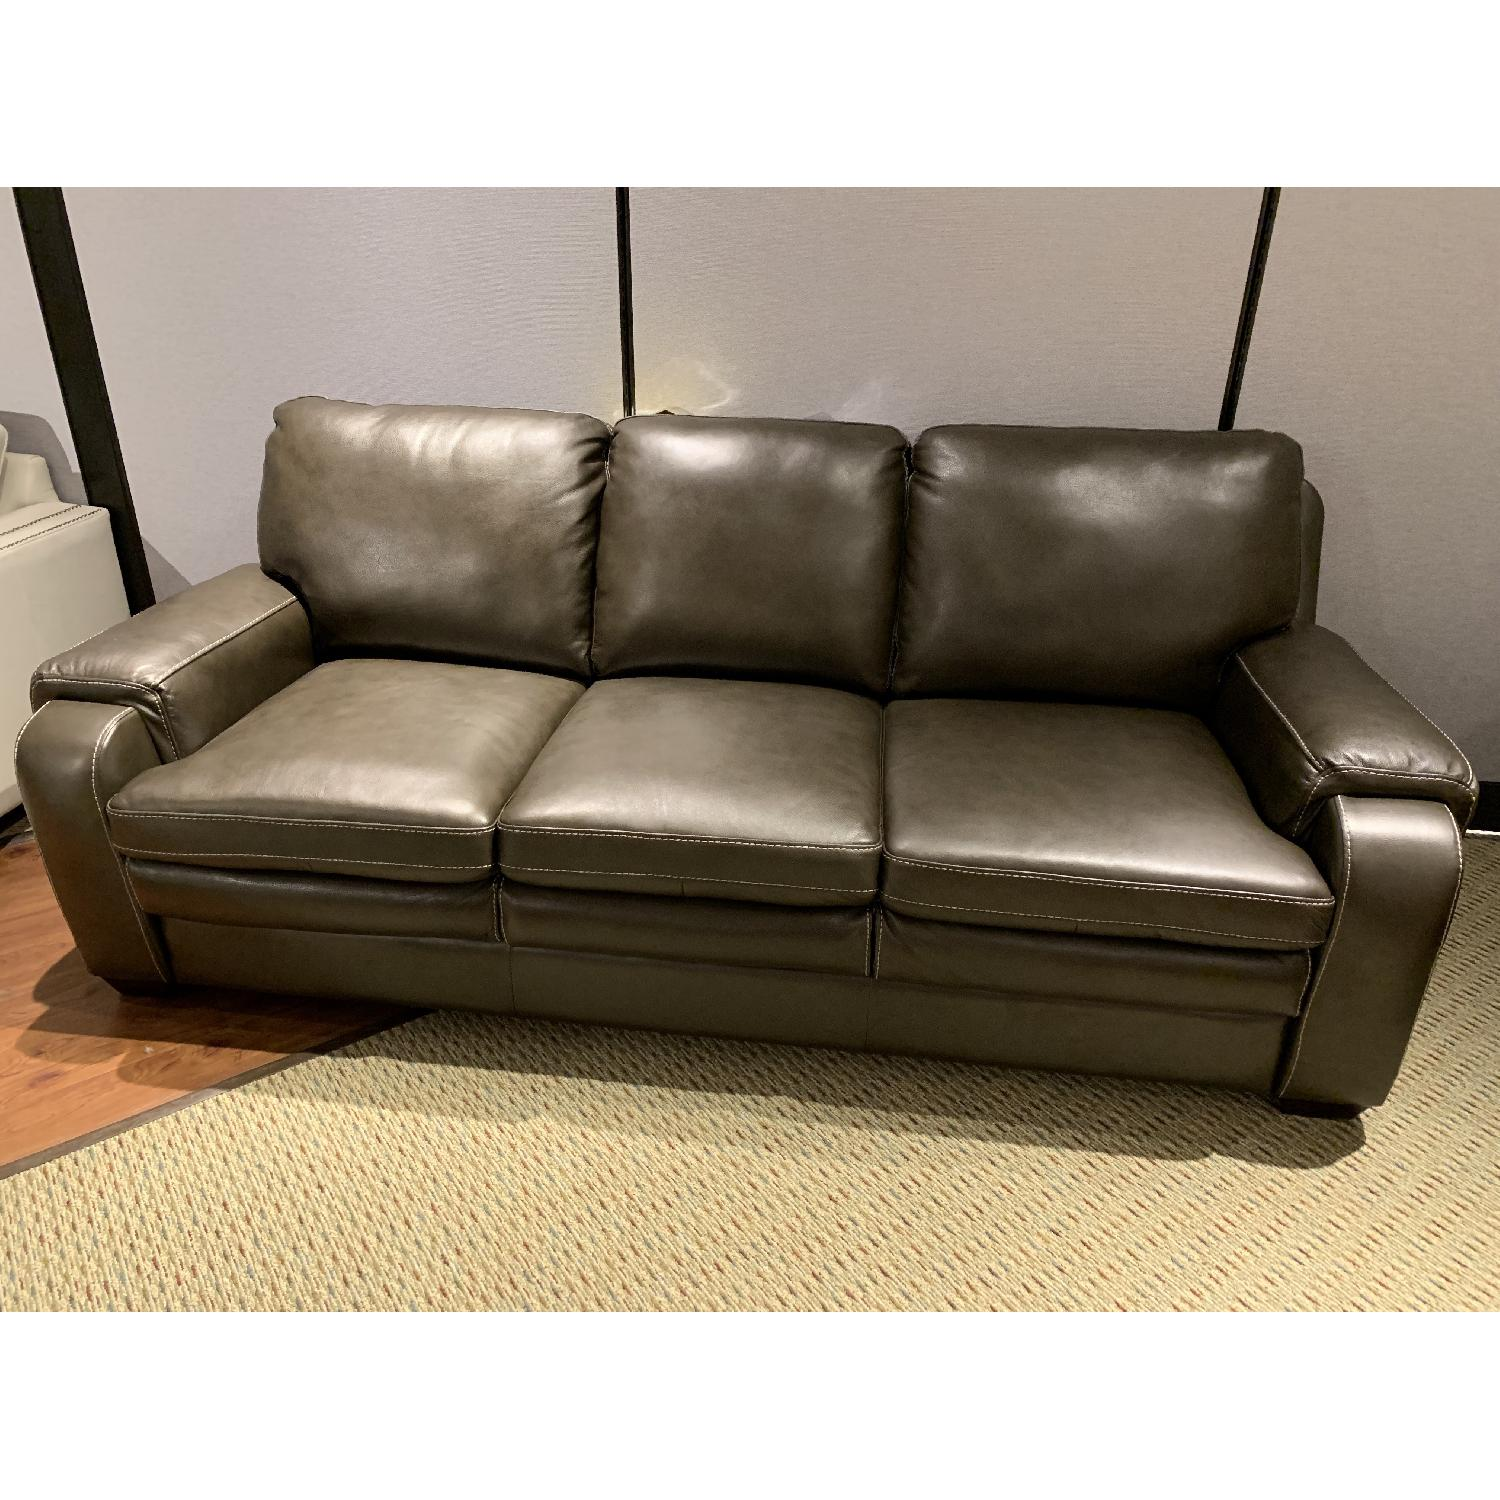 Jennifer Convertibles Matera Leather Match Sofa-1